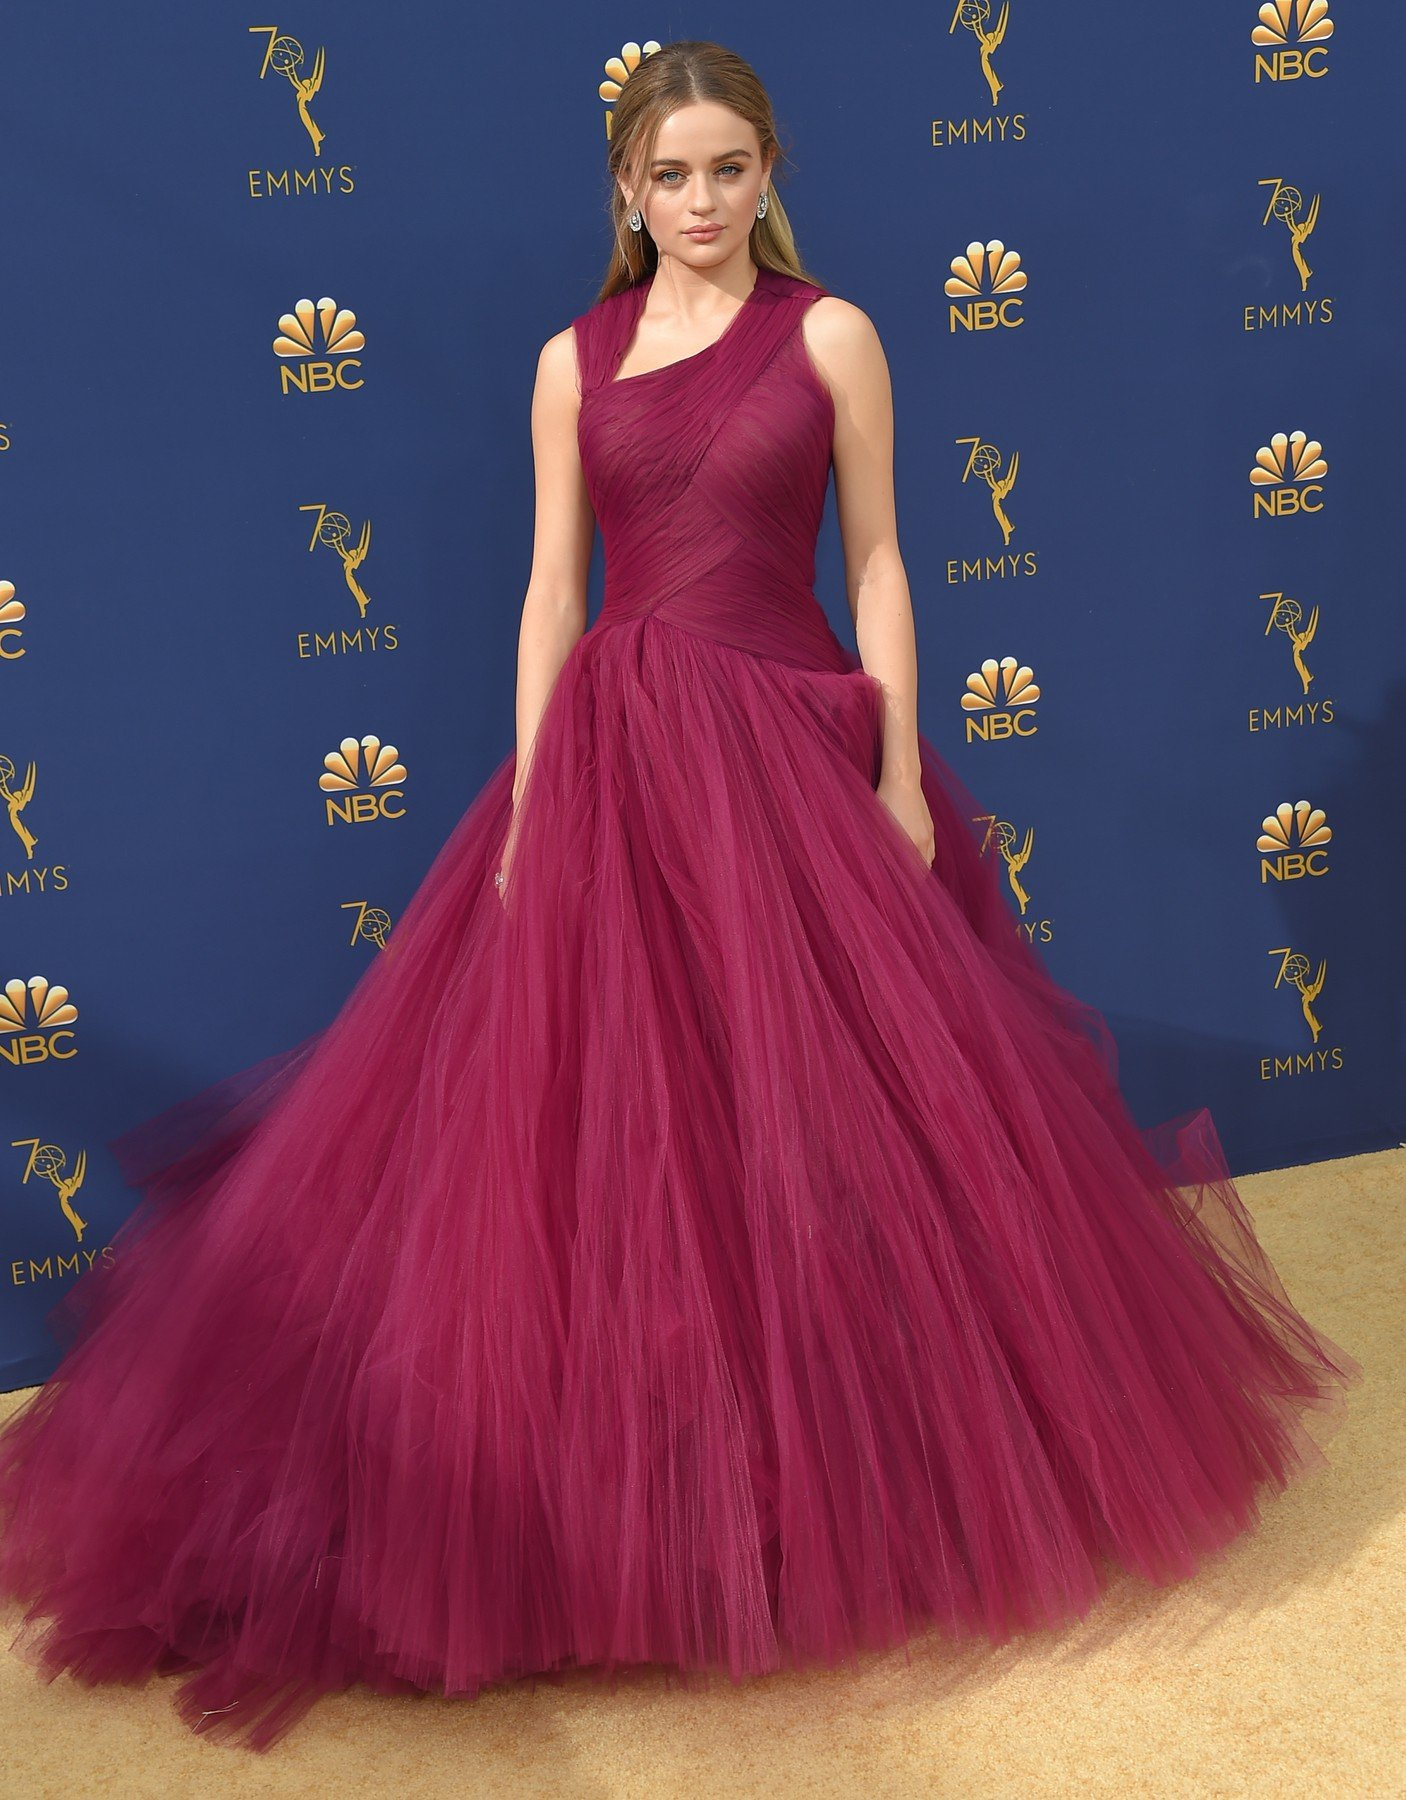 70th Primetime Emmy Awards held at Microsoft Theatre L.A. 17 Sep 2018, Image: 387176430, License: Rights-managed, Restrictions: World Rights, Model Release: no, Credit line: Profimedia, Mega Agency